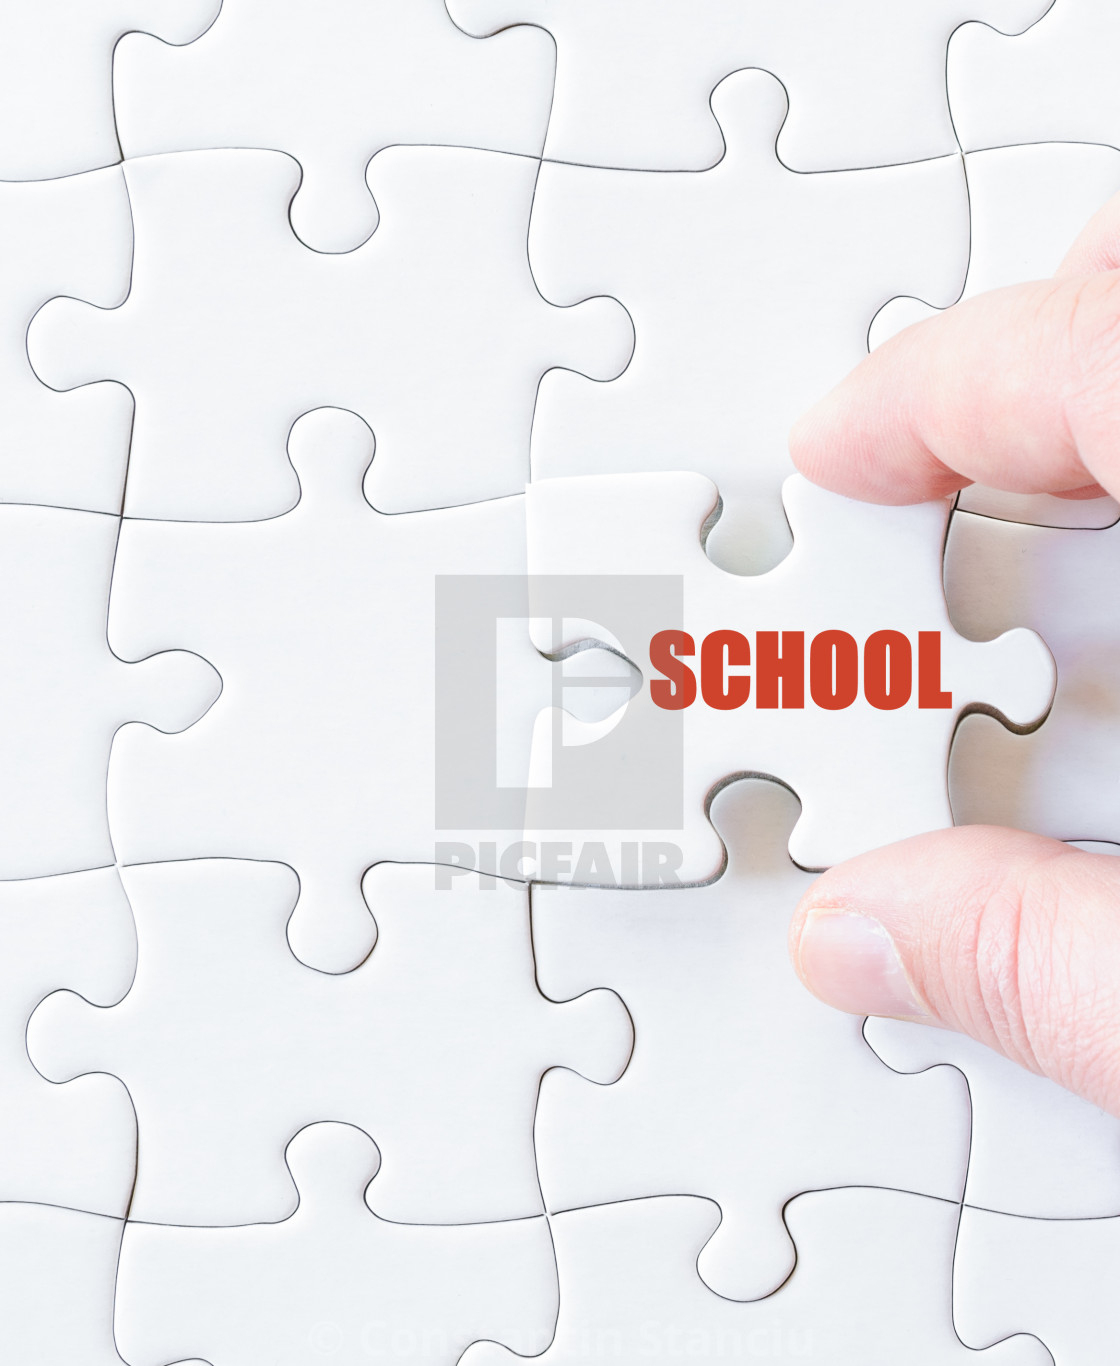 Missing Jigsaw Puzzle Piece With Word School - License, Download Or - Print Missing Puzzle Piece